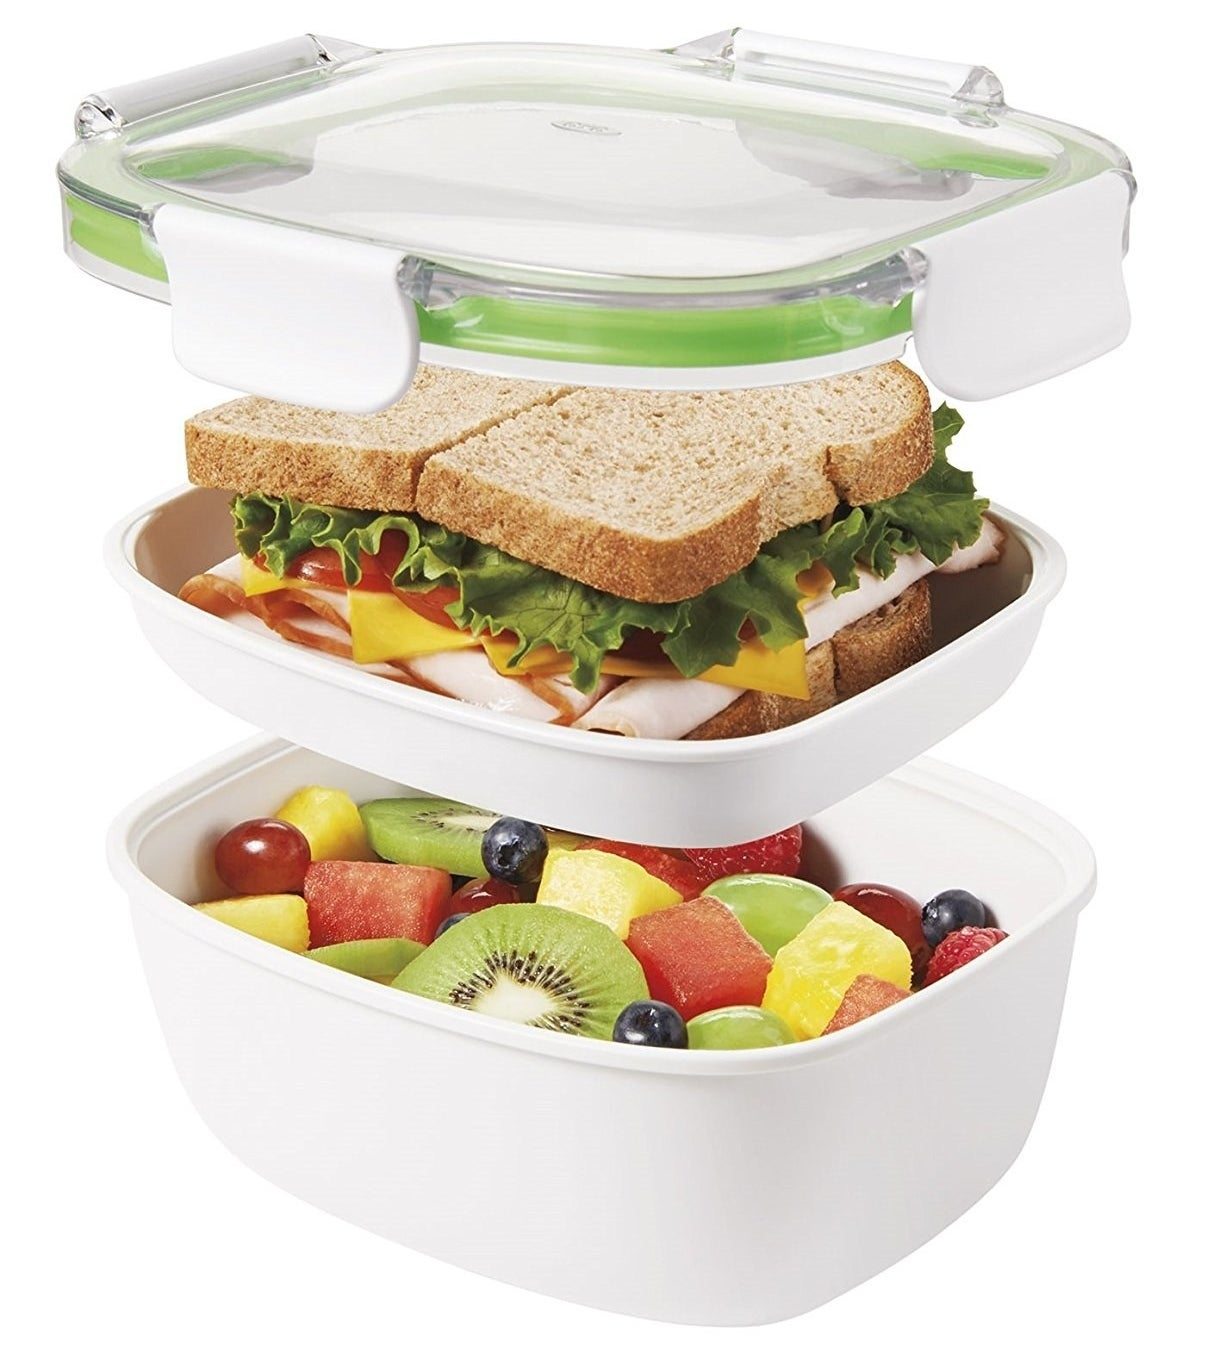 """This BPA-free container is dishwasher-, microwave-, and freezer-safe. Promising Review: """"I love this container. I put a salad under and food to warm in the microwave on top. I store it sideways in my lunch box and it never leaks. The rubber sealer can be easily removed for cleaning. Awesome!"""" —SusanGet it from Amazon for $14.99 (also available for salads for $17.95)."""